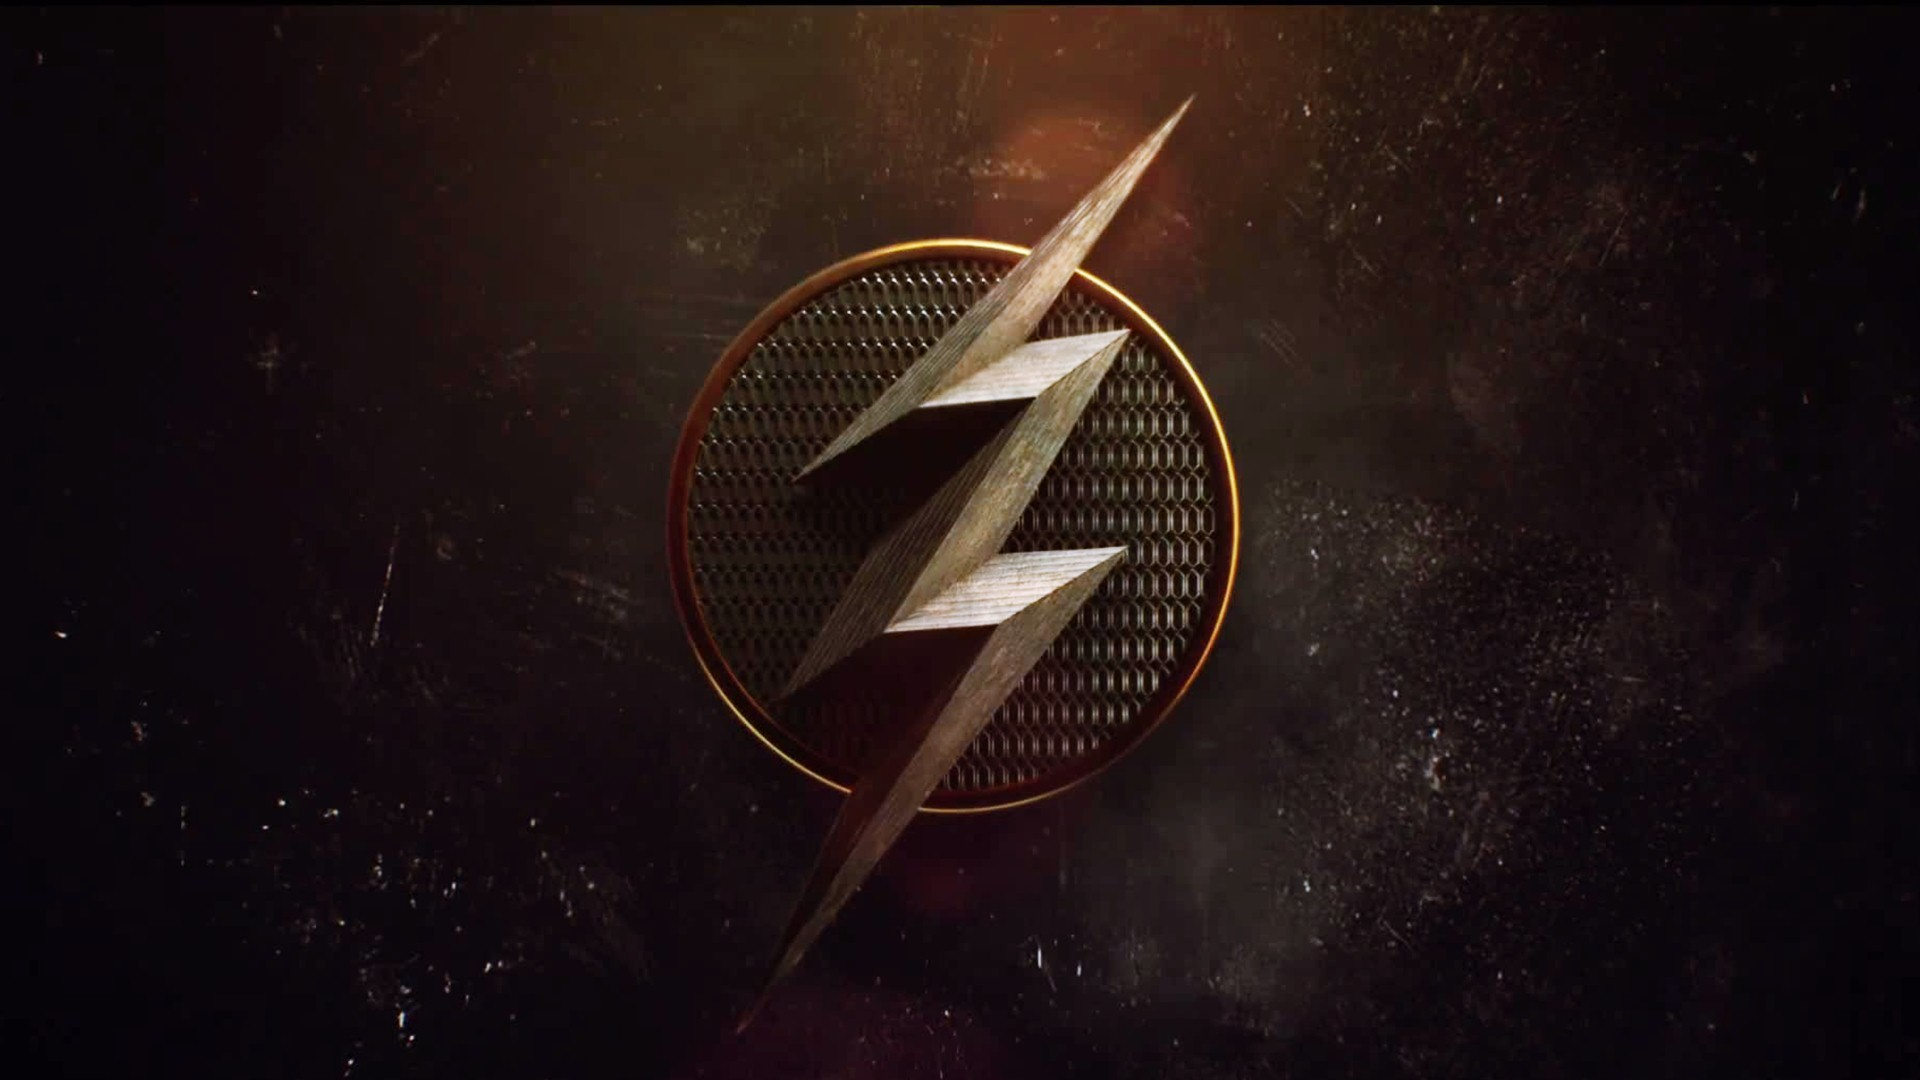 The Flash 4k Wallpaper 65 Images